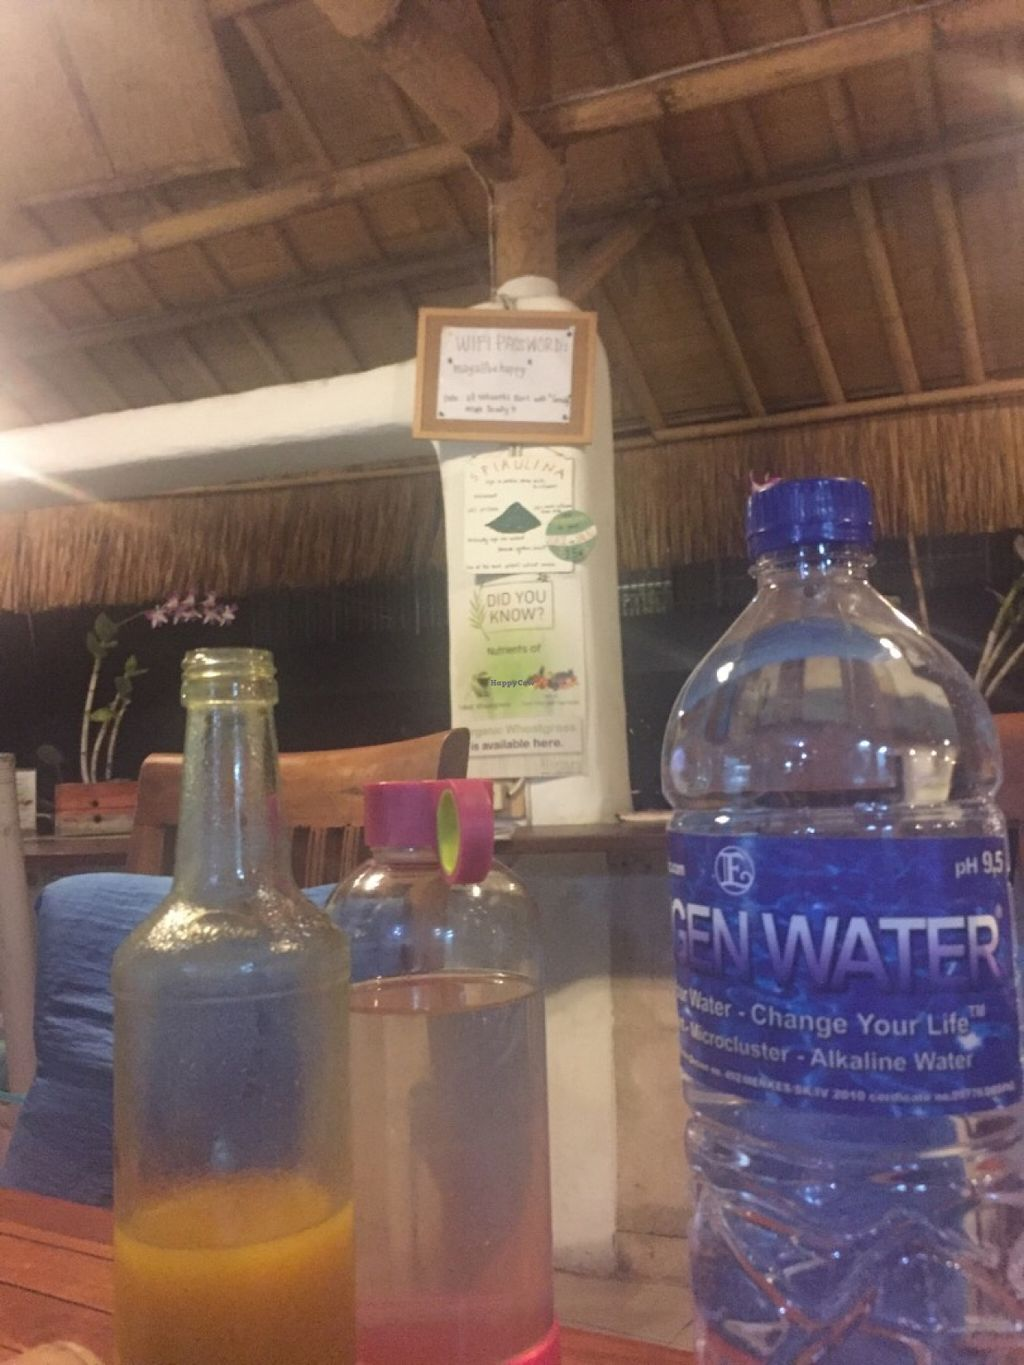 """Photo of Alkaline Restaurant  by <a href=""""/members/profile/rodgo"""">rodgo</a> <br/>The famous alkaline water and turmeric beverage  <br/> July 2, 2016  - <a href='/contact/abuse/image/63426/157288'>Report</a>"""